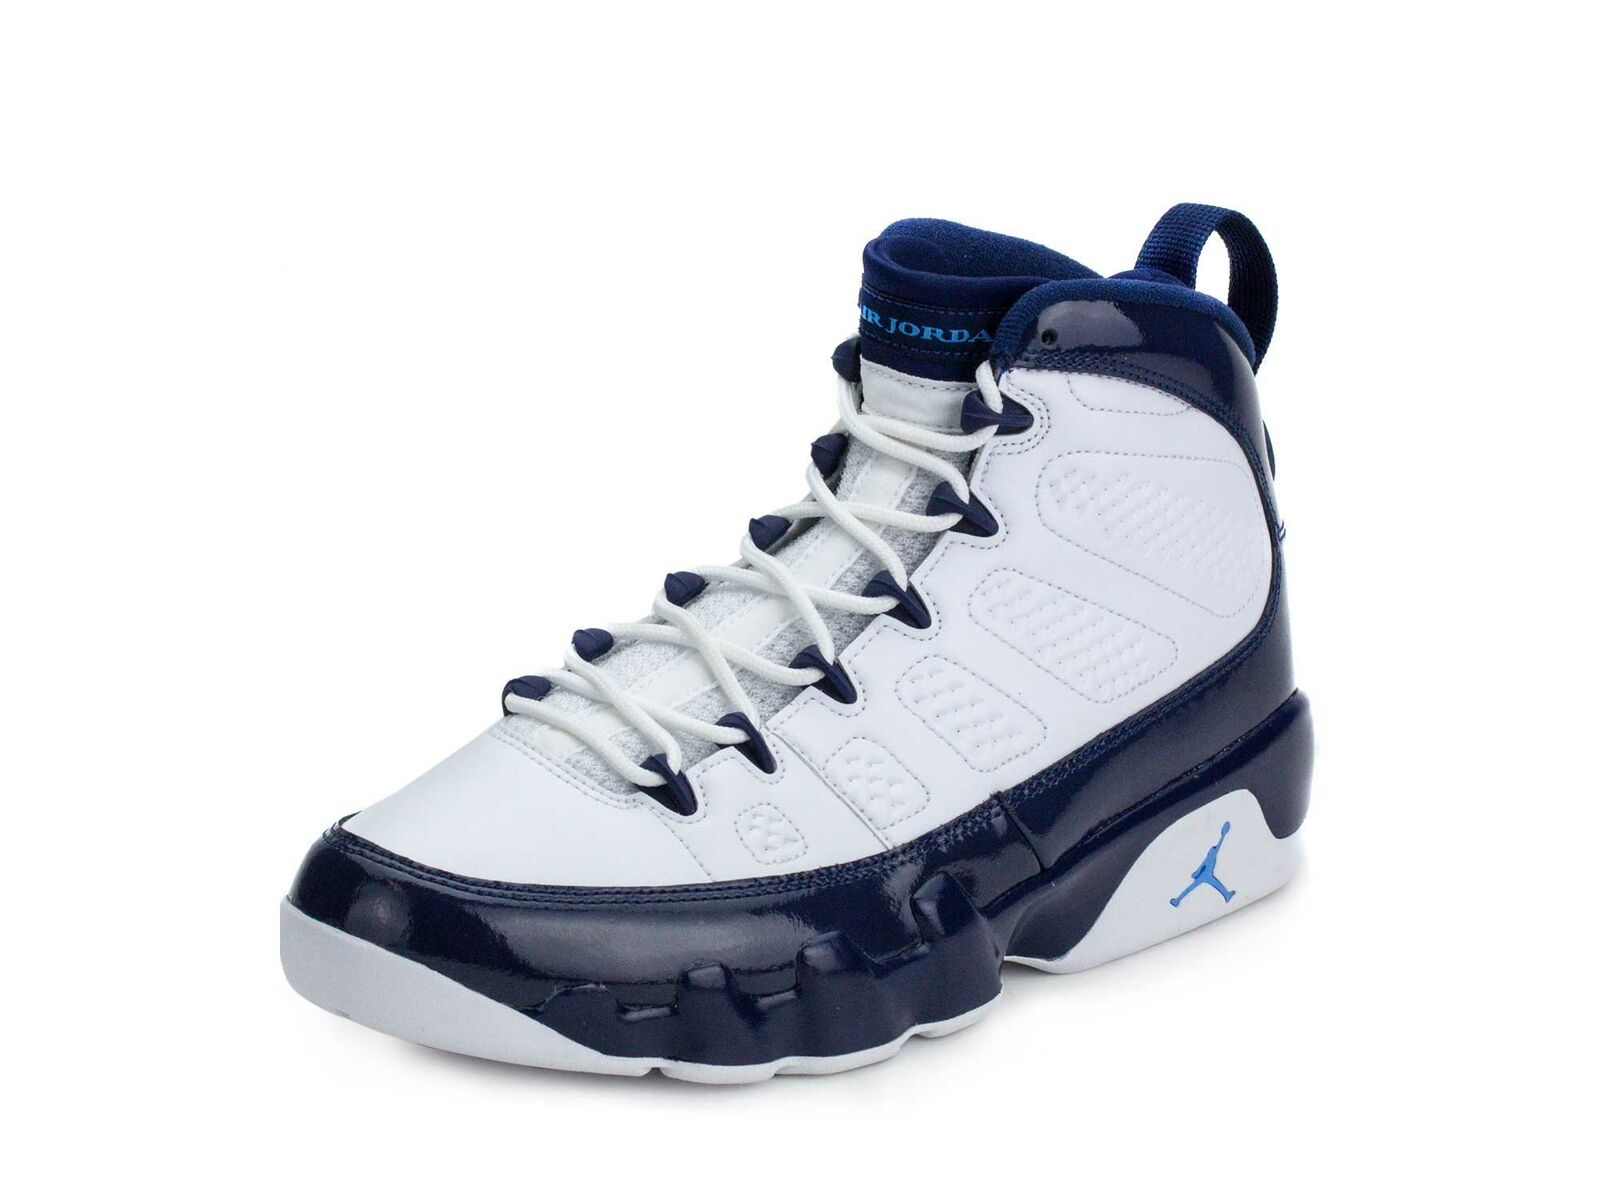 Nike Mens Air Jordan 9 Retro White University bluee-bluee 302370-145